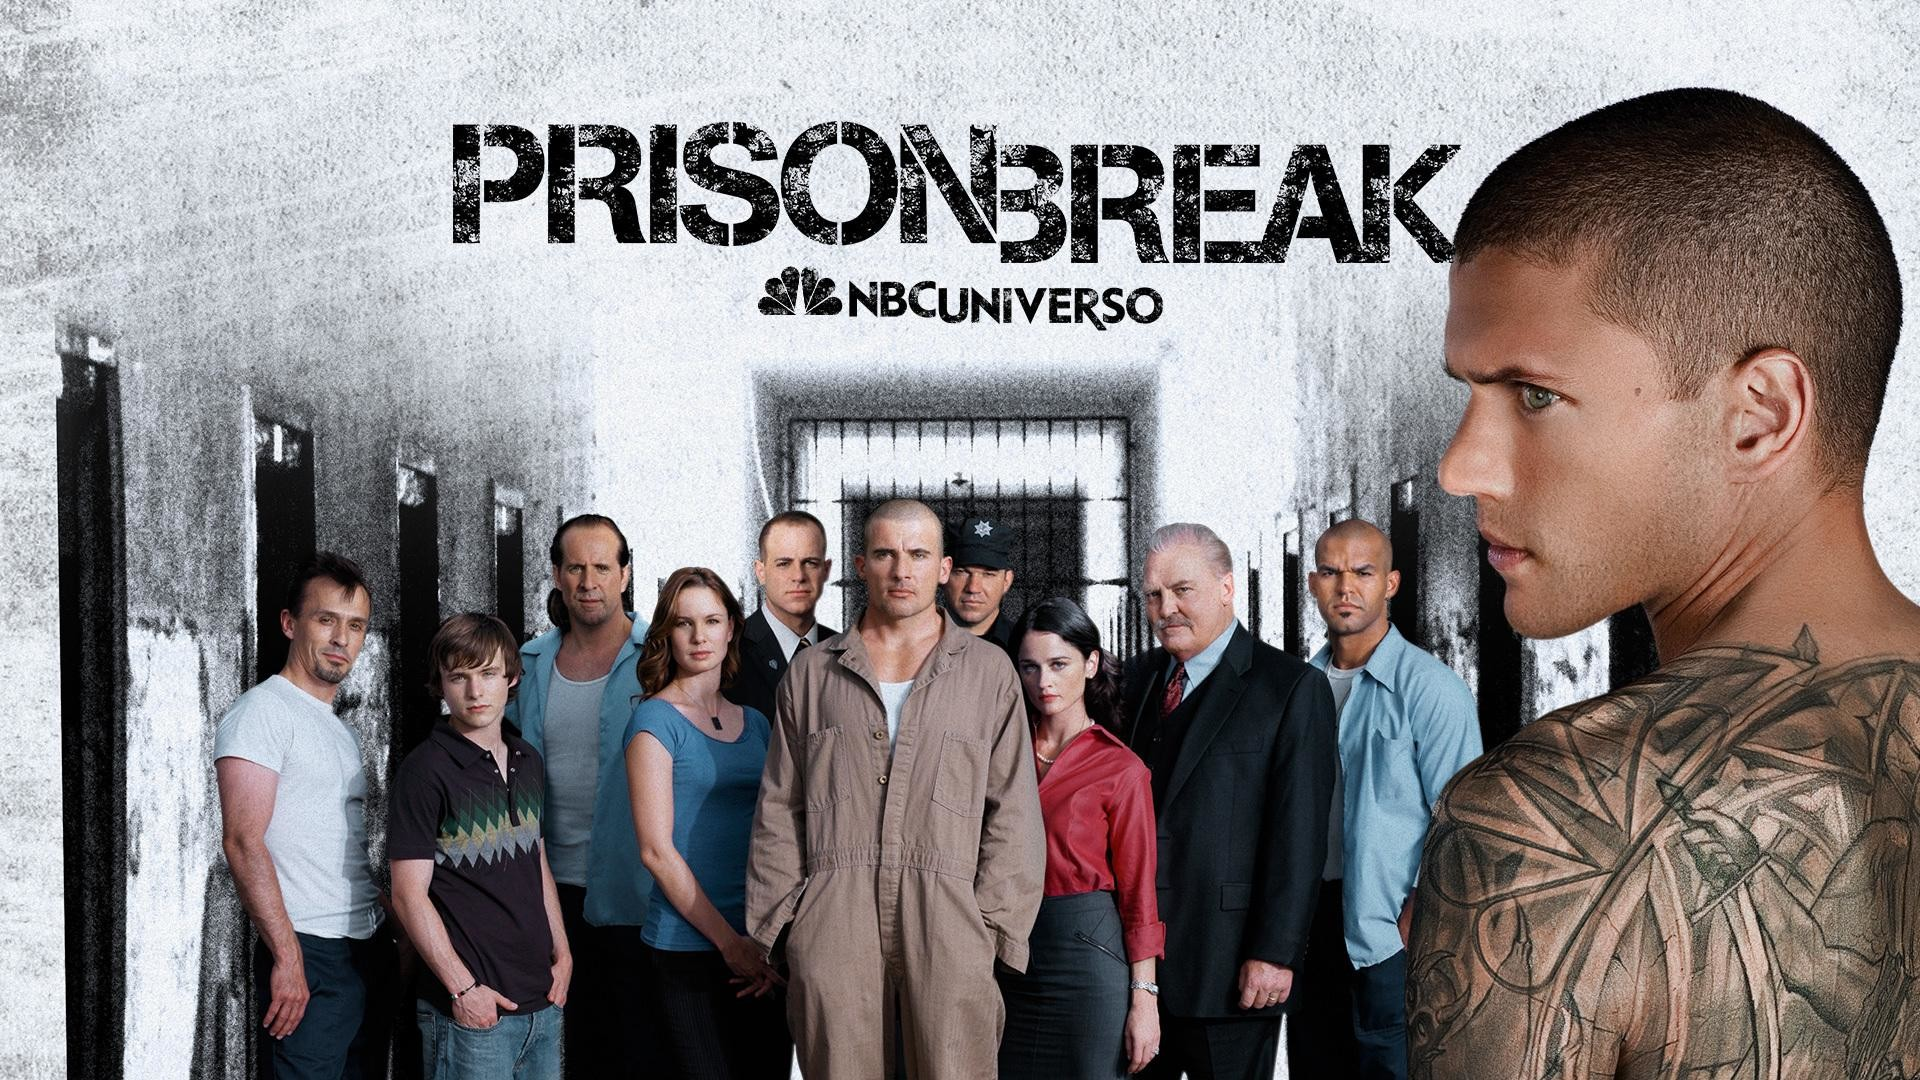 1920x1080 'Prison Break' To Air For The First Time Ever In Spanish On NBC Universo